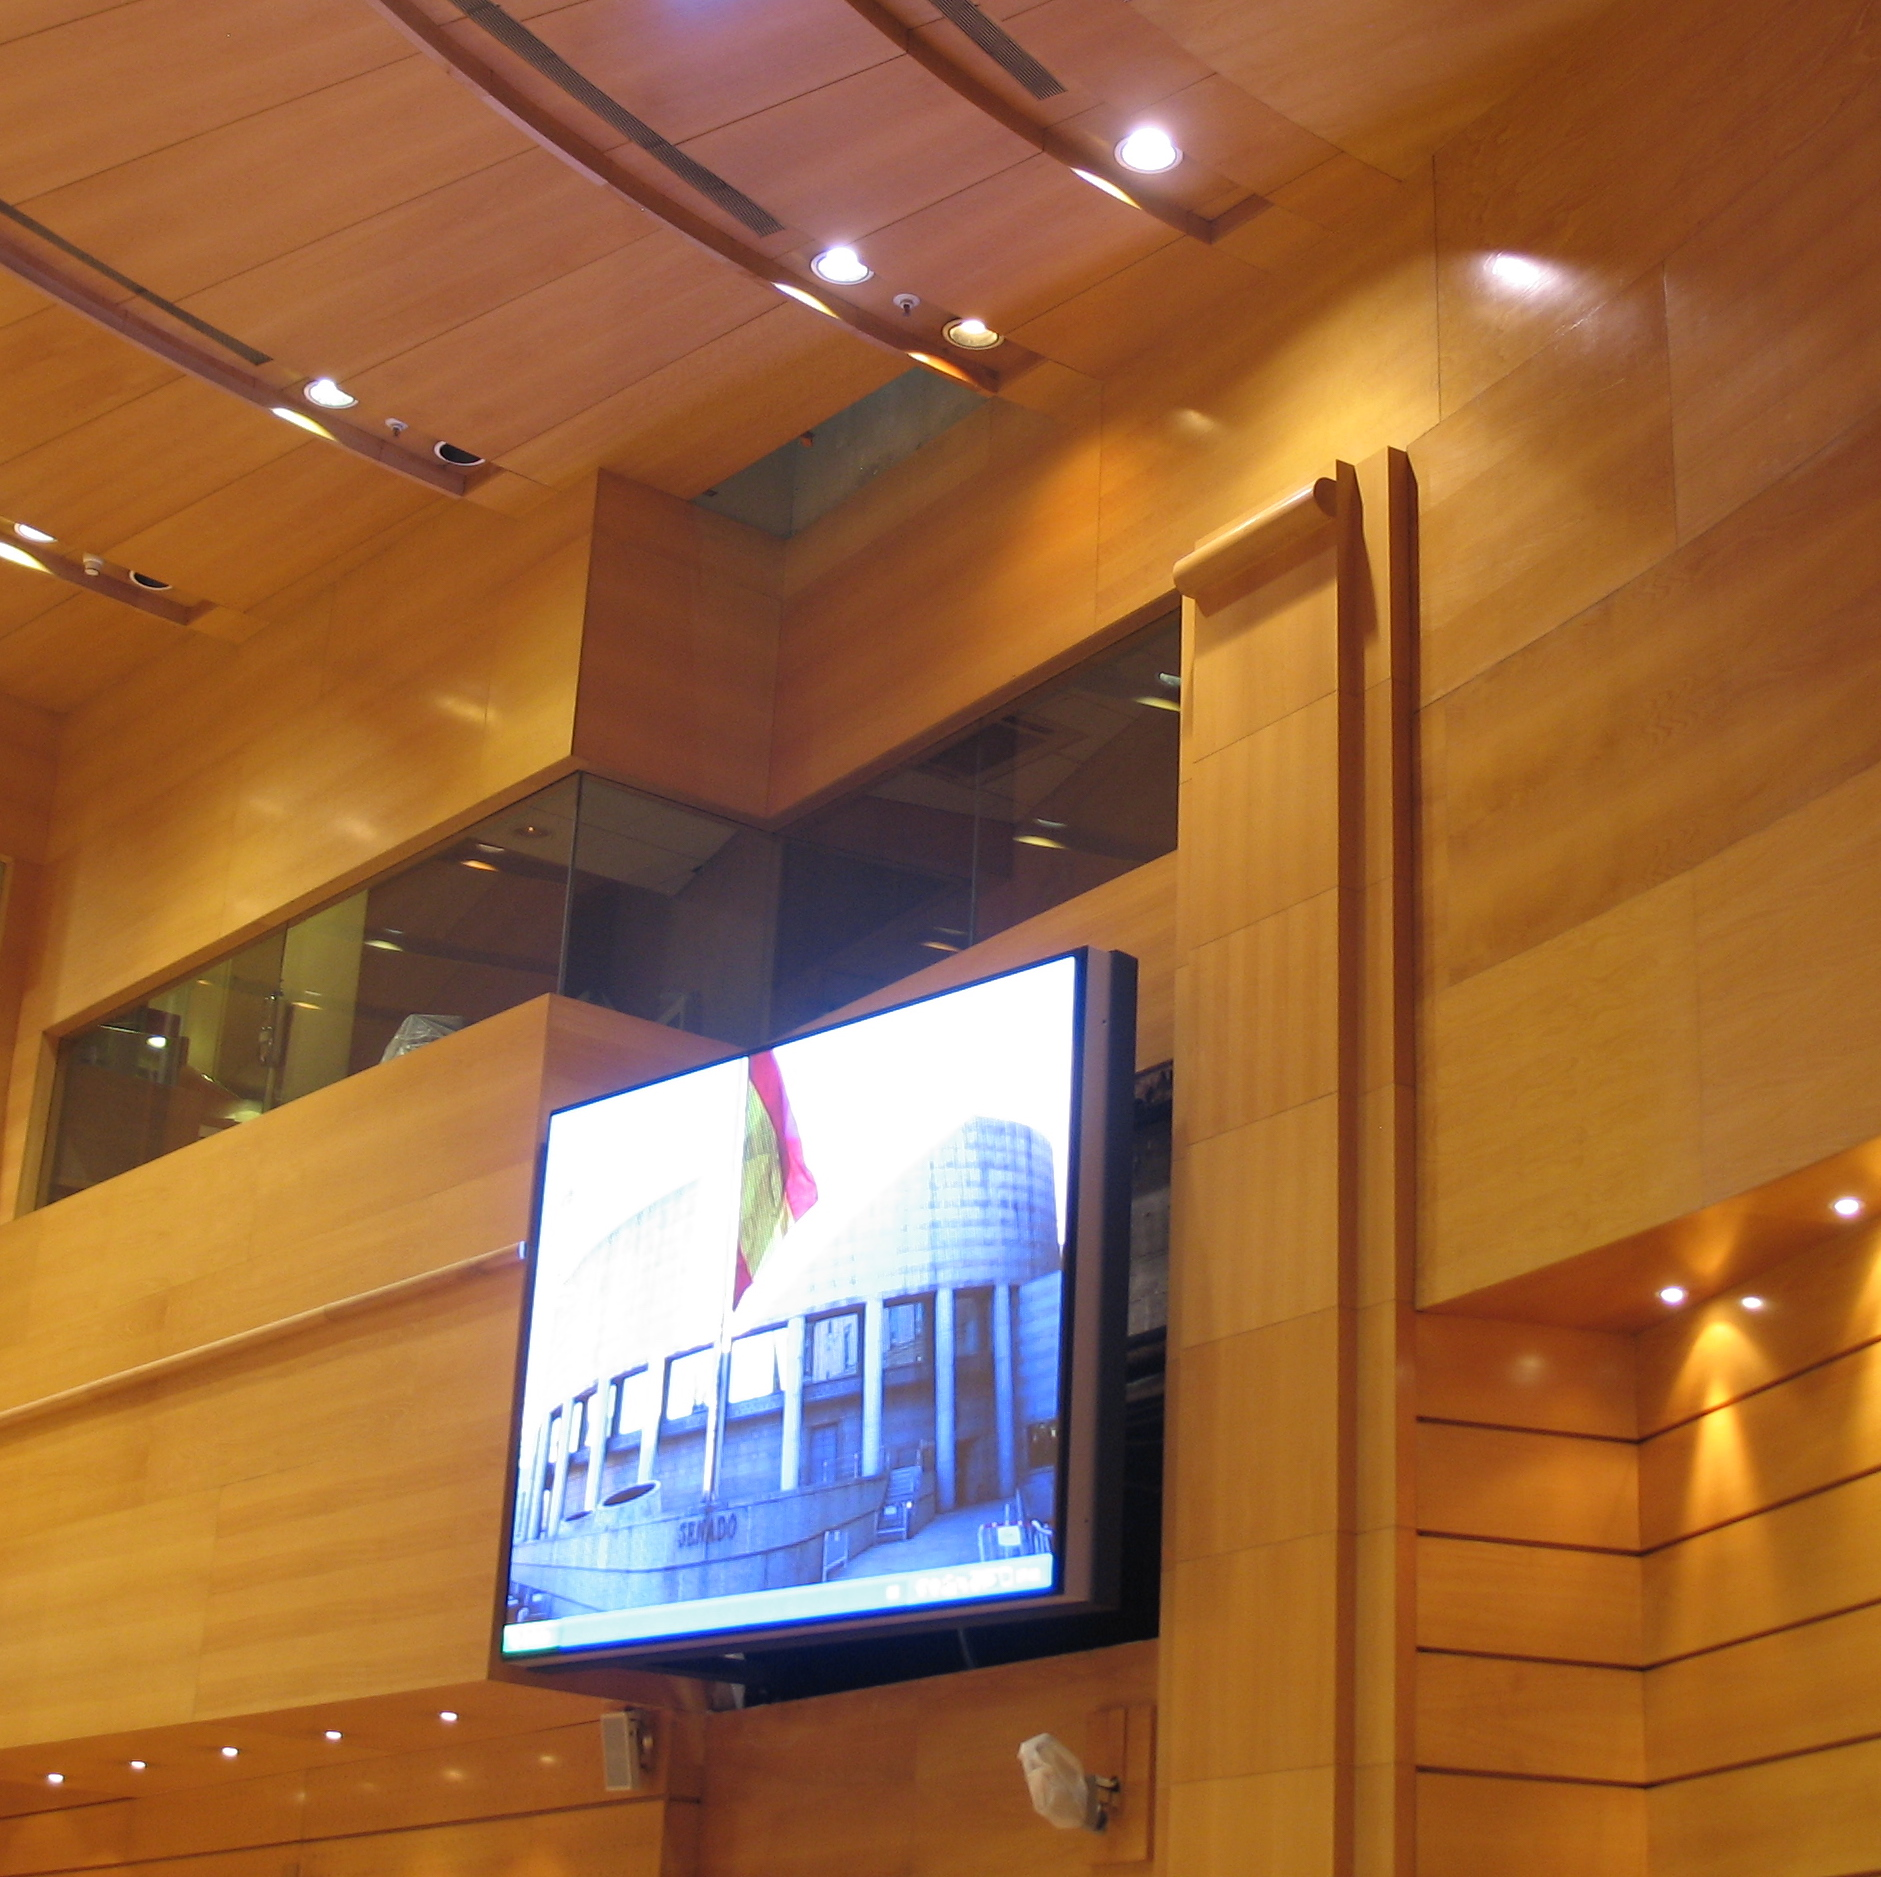 textel indoor senado - Gama Retail / Indoor / Digital Signage